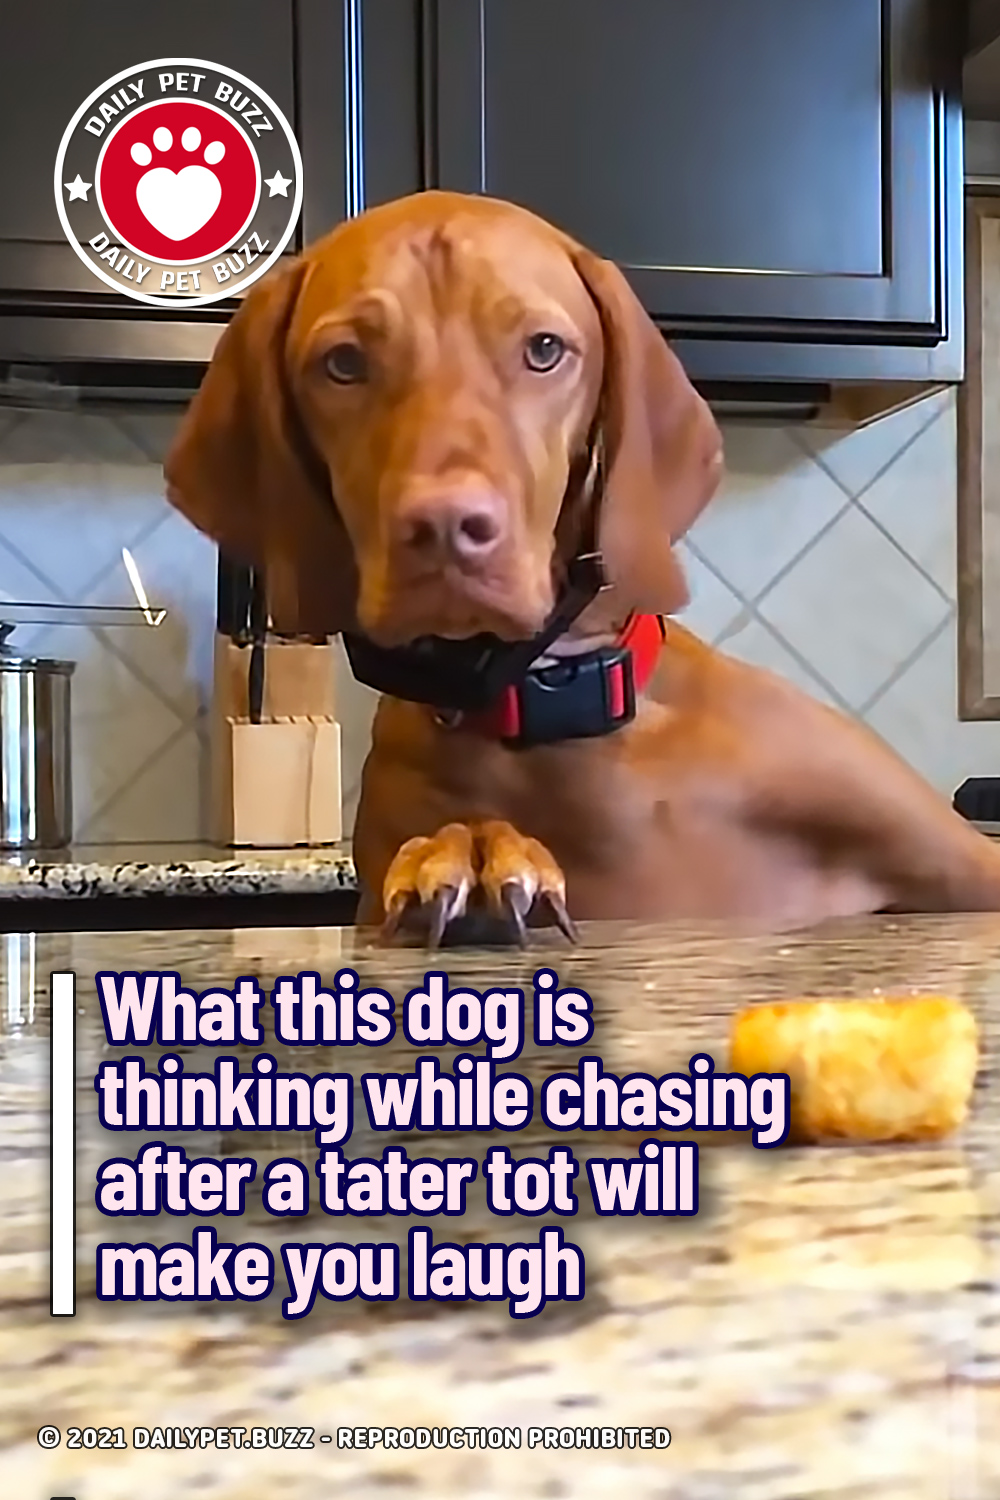 What this dog is thinking while chasing after a tater tot will make you laugh